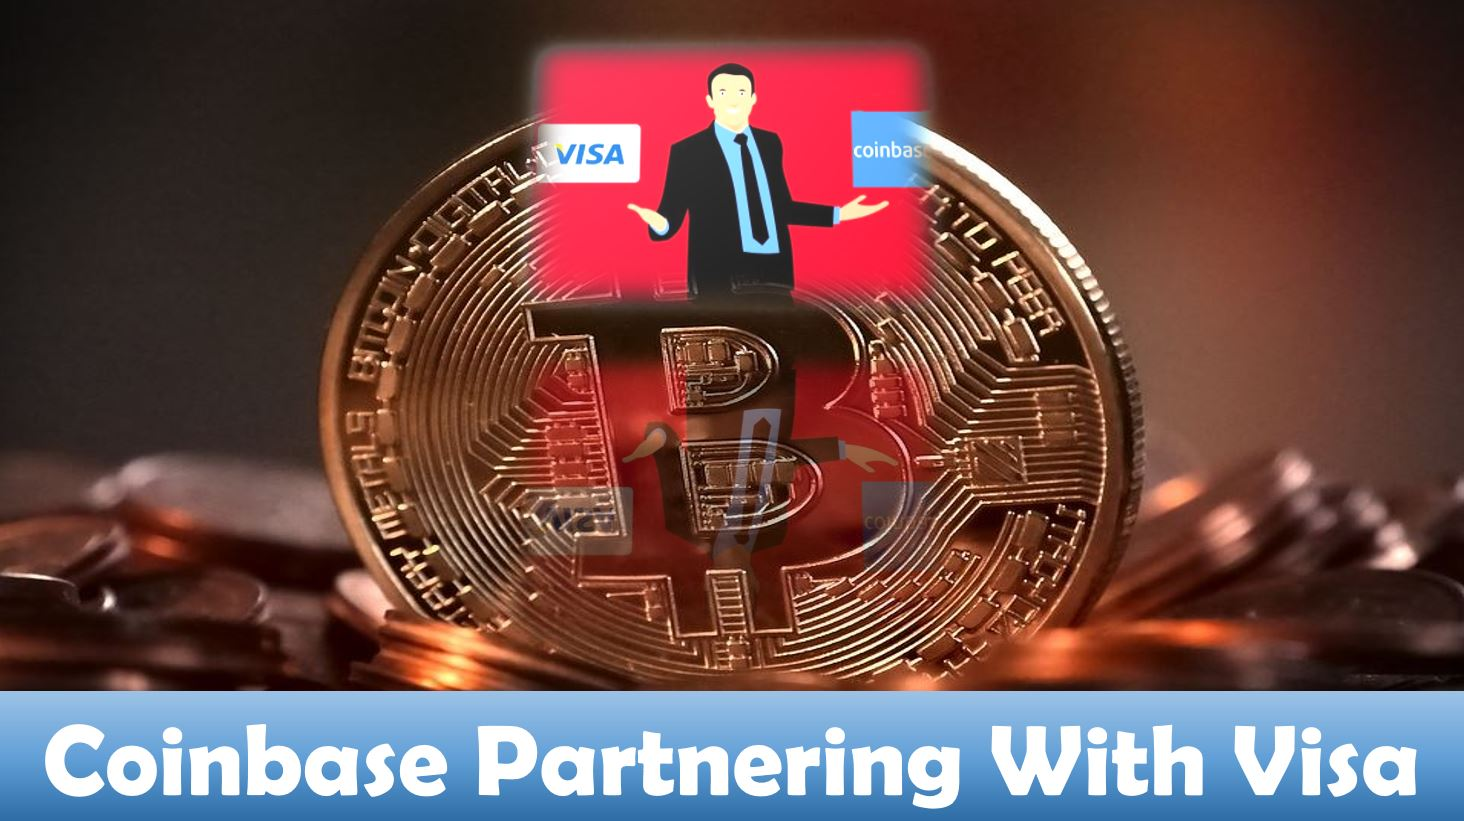 Coinbase Partnering With Visa